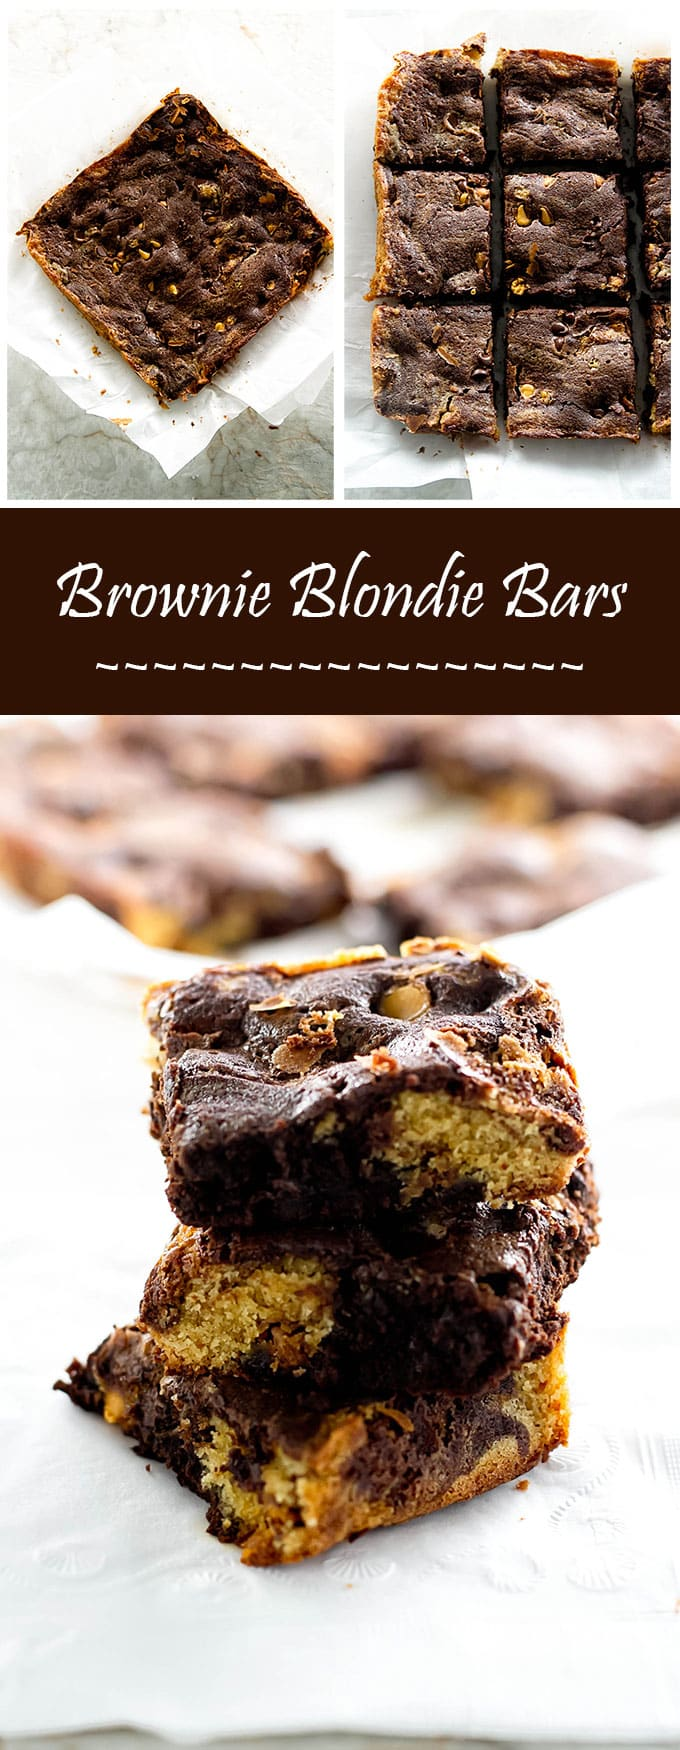 Why choose when you can have both? These brownie blondie bars are the perfect treat! | girlgonegourmet.com